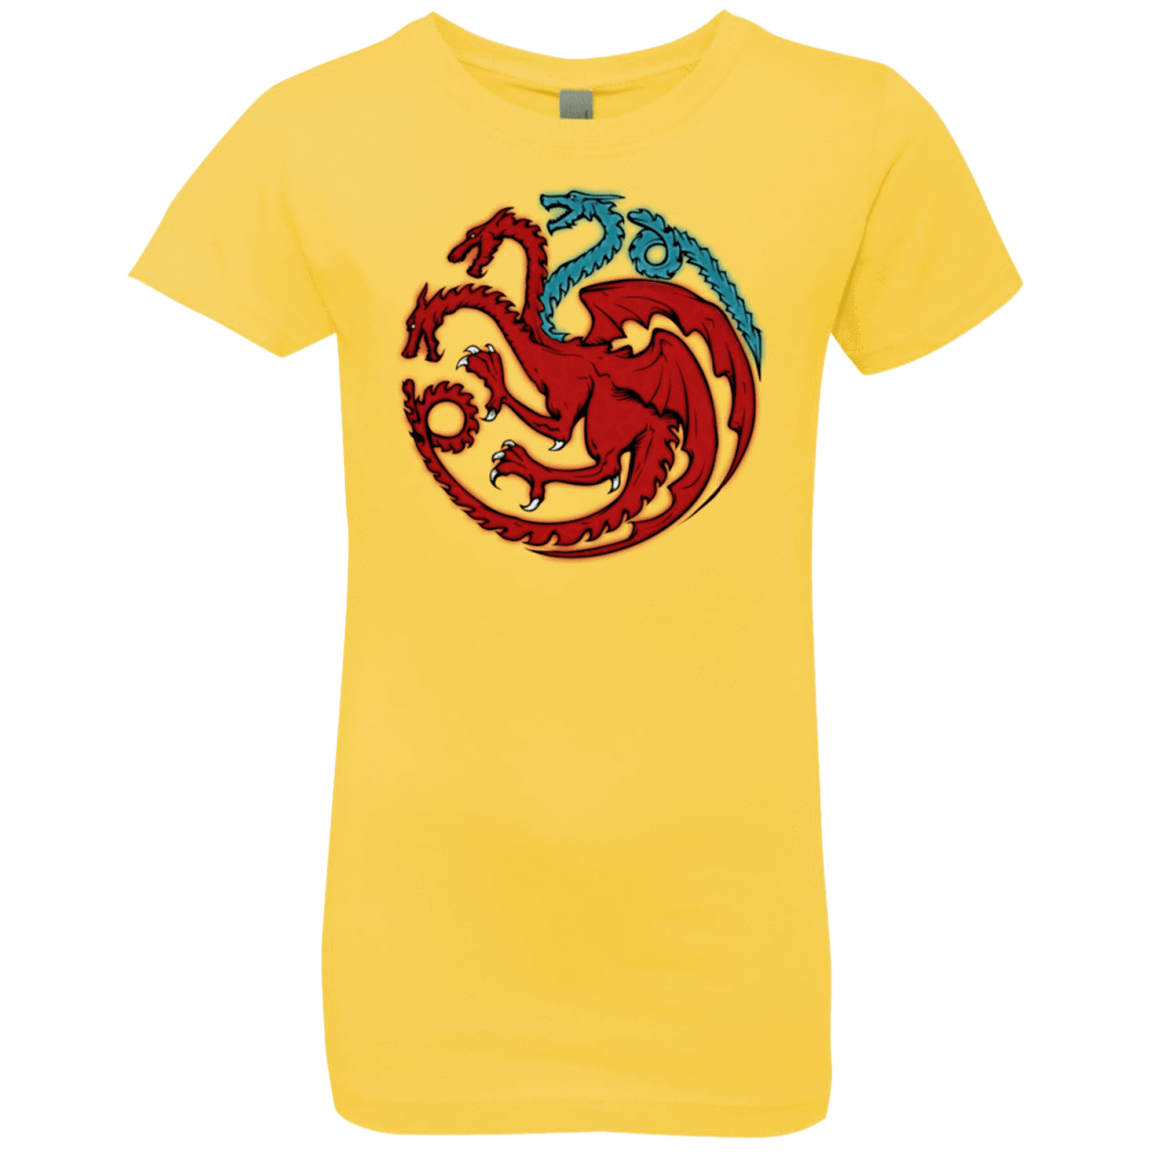 T-Shirts Vibrant Yellow / YXS Trinity of fire and ice V2 Girls Premium T-Shirt